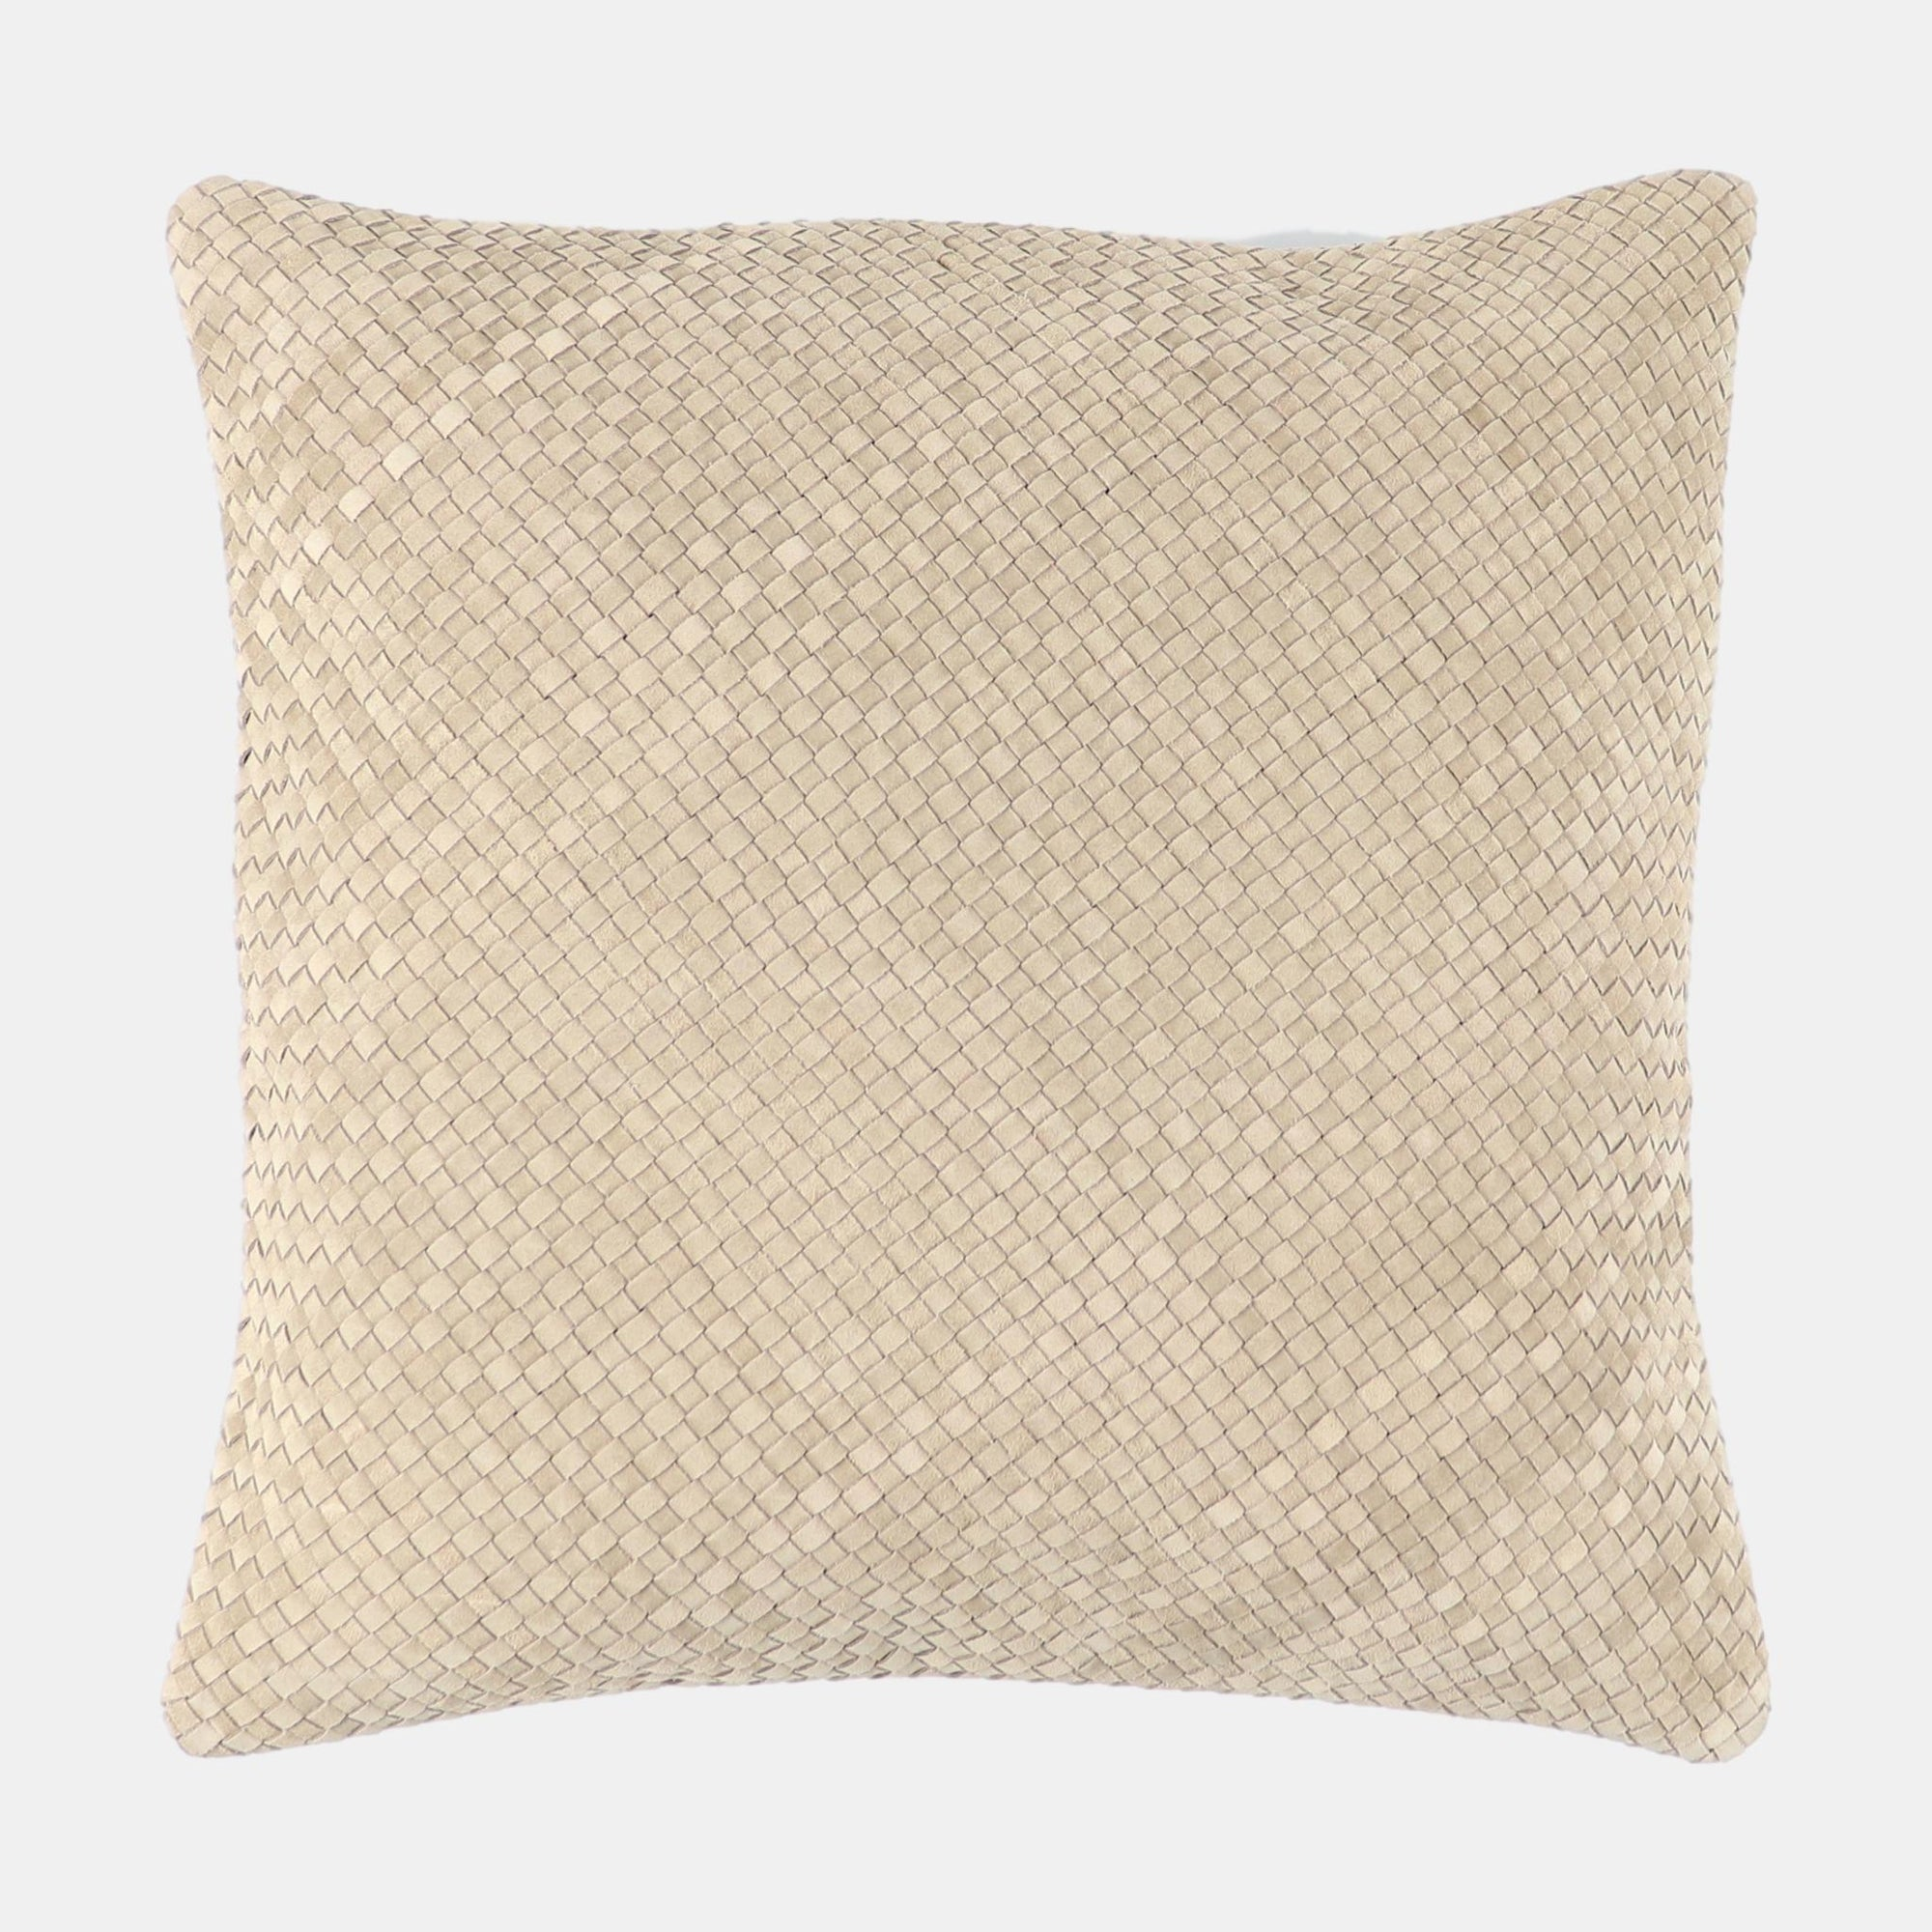 WILLIAMSBURG Pillow